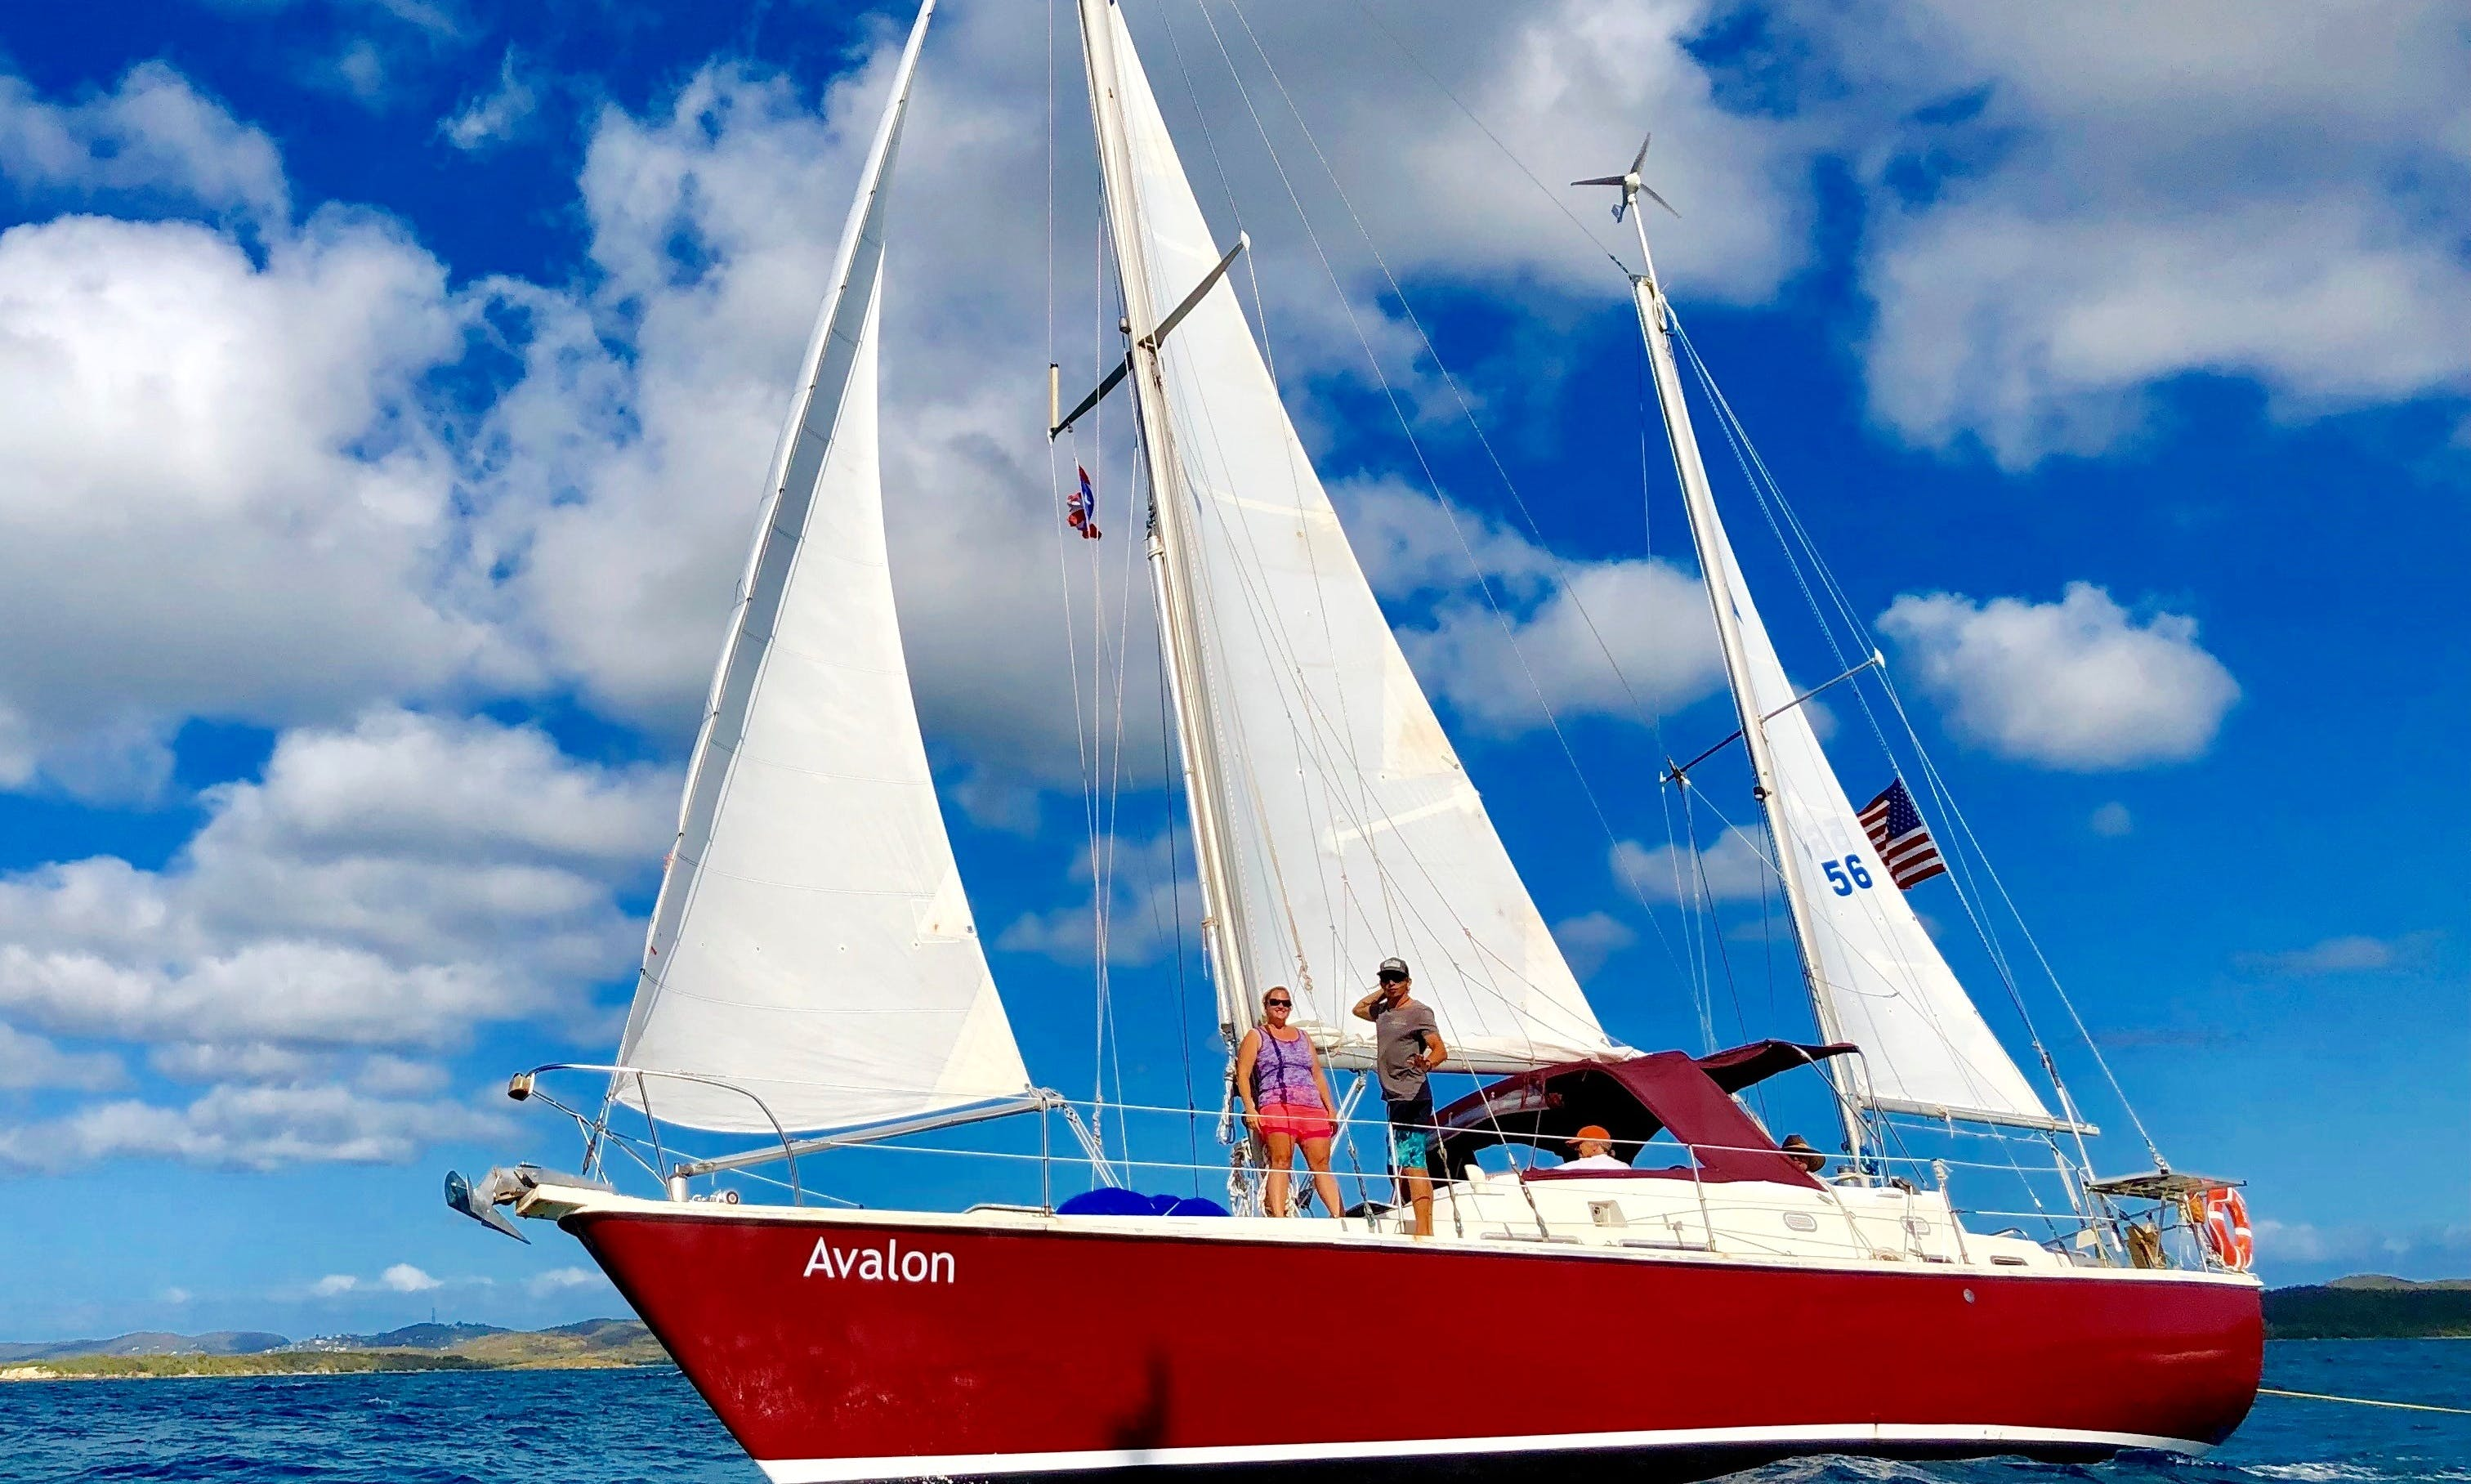 Sail, Snorkel, and Escape aboard SV Avalon with Vieques Sailing Charters!